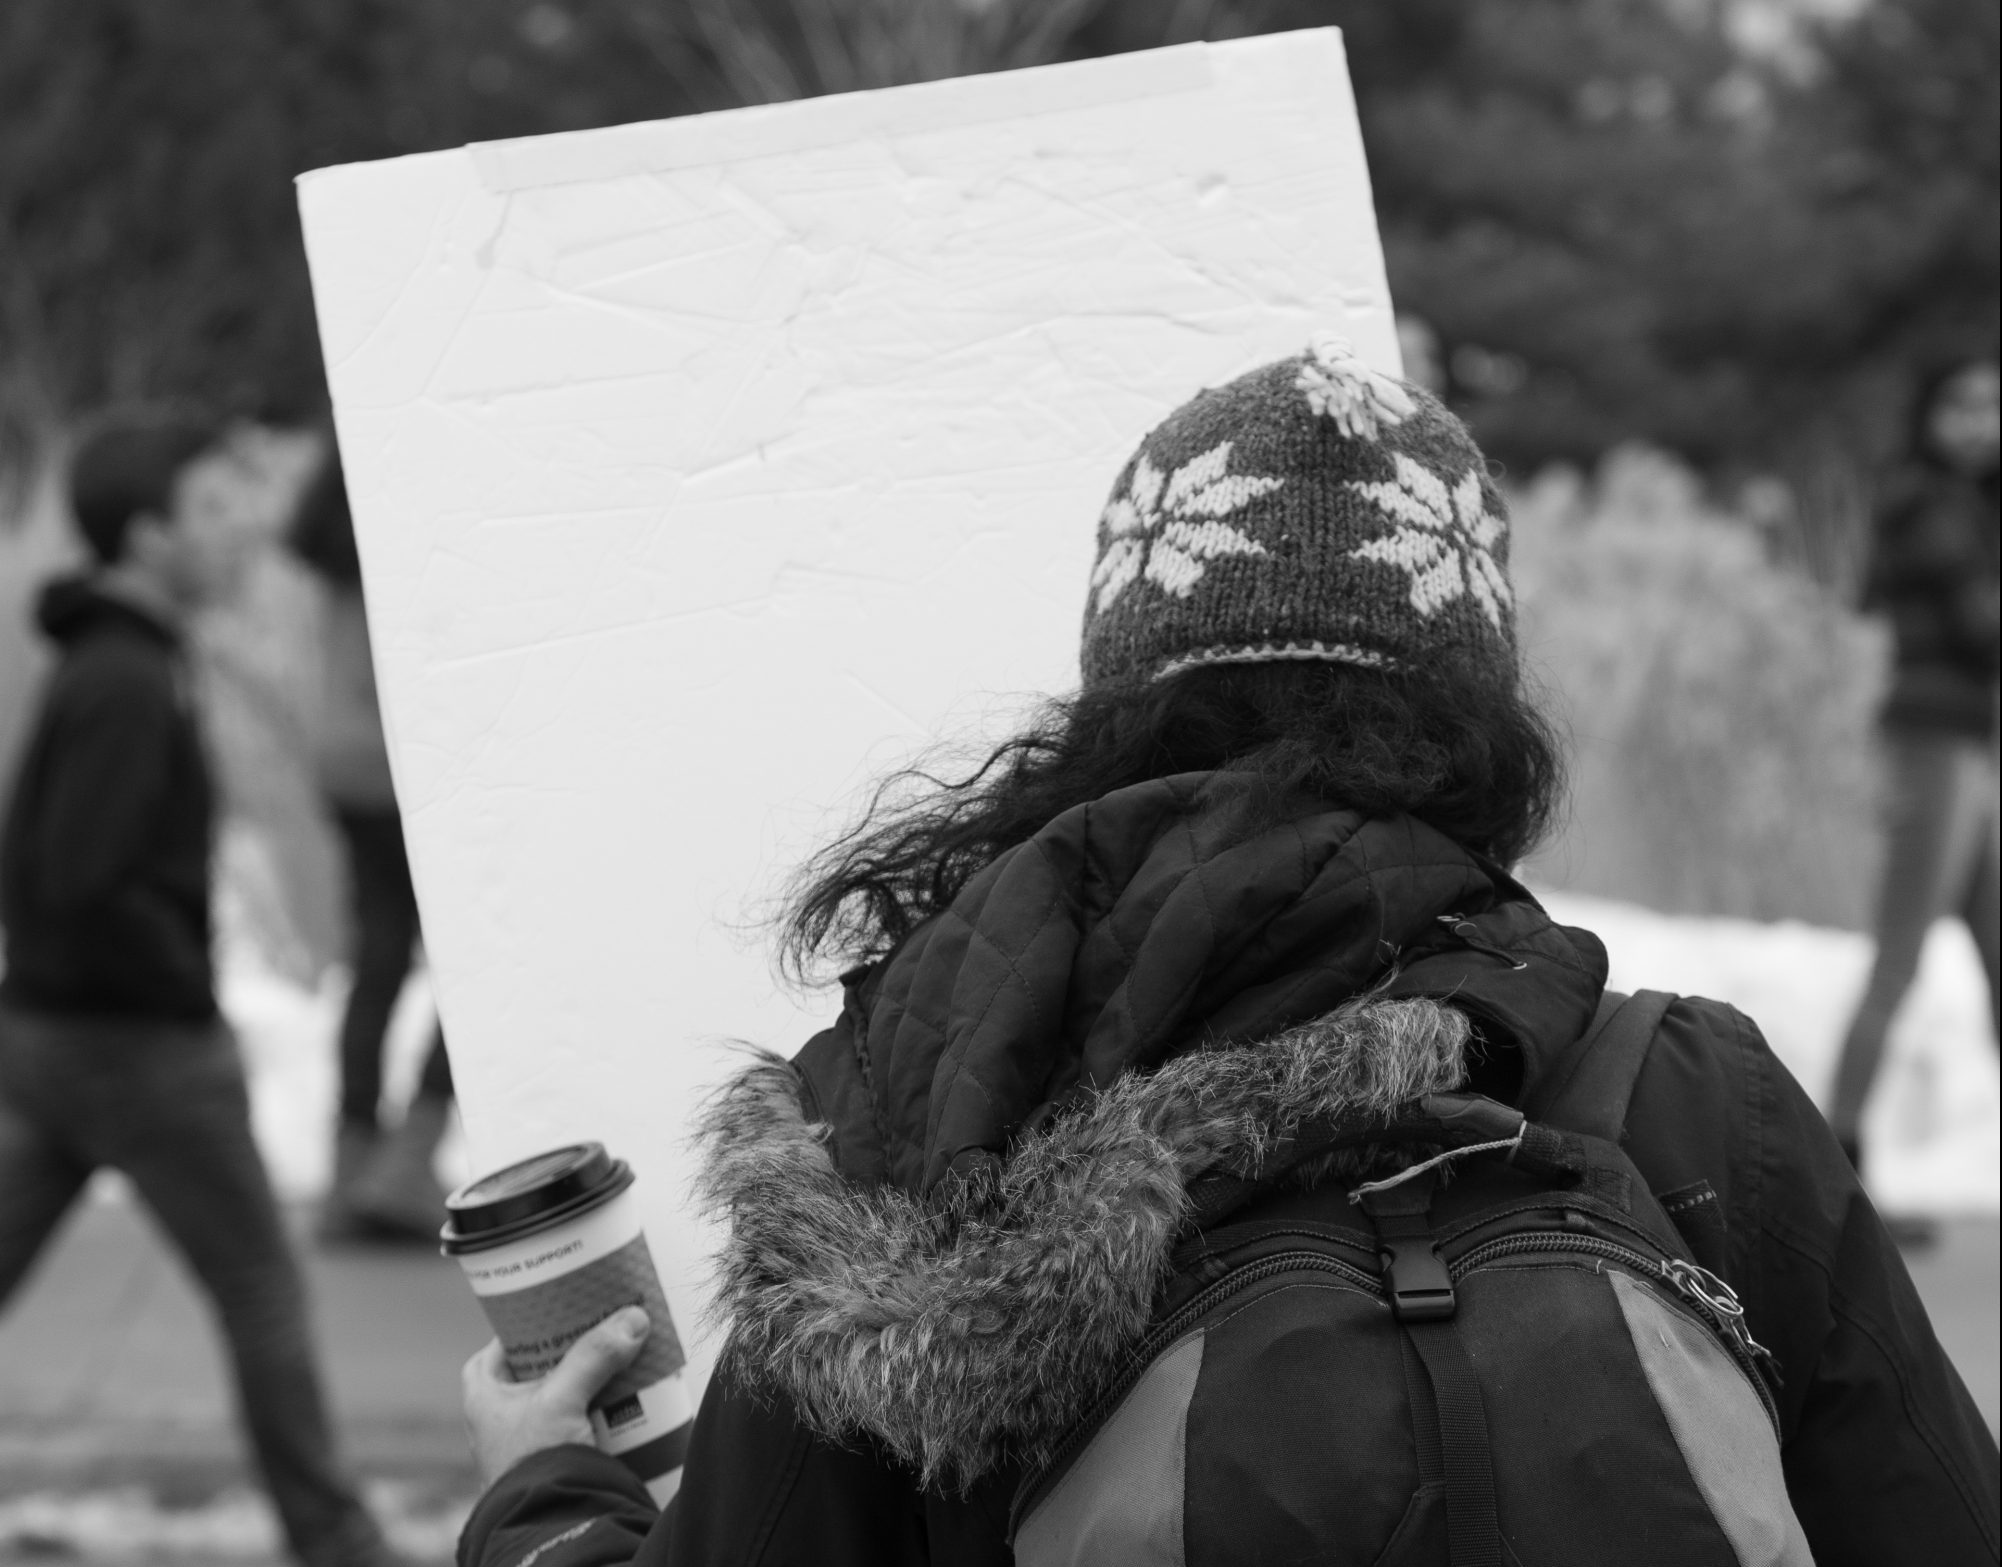 McMaster releases first public draft on freedom of expression guidelines Ad hoc committee report details recommendations about free speech and protests on campus